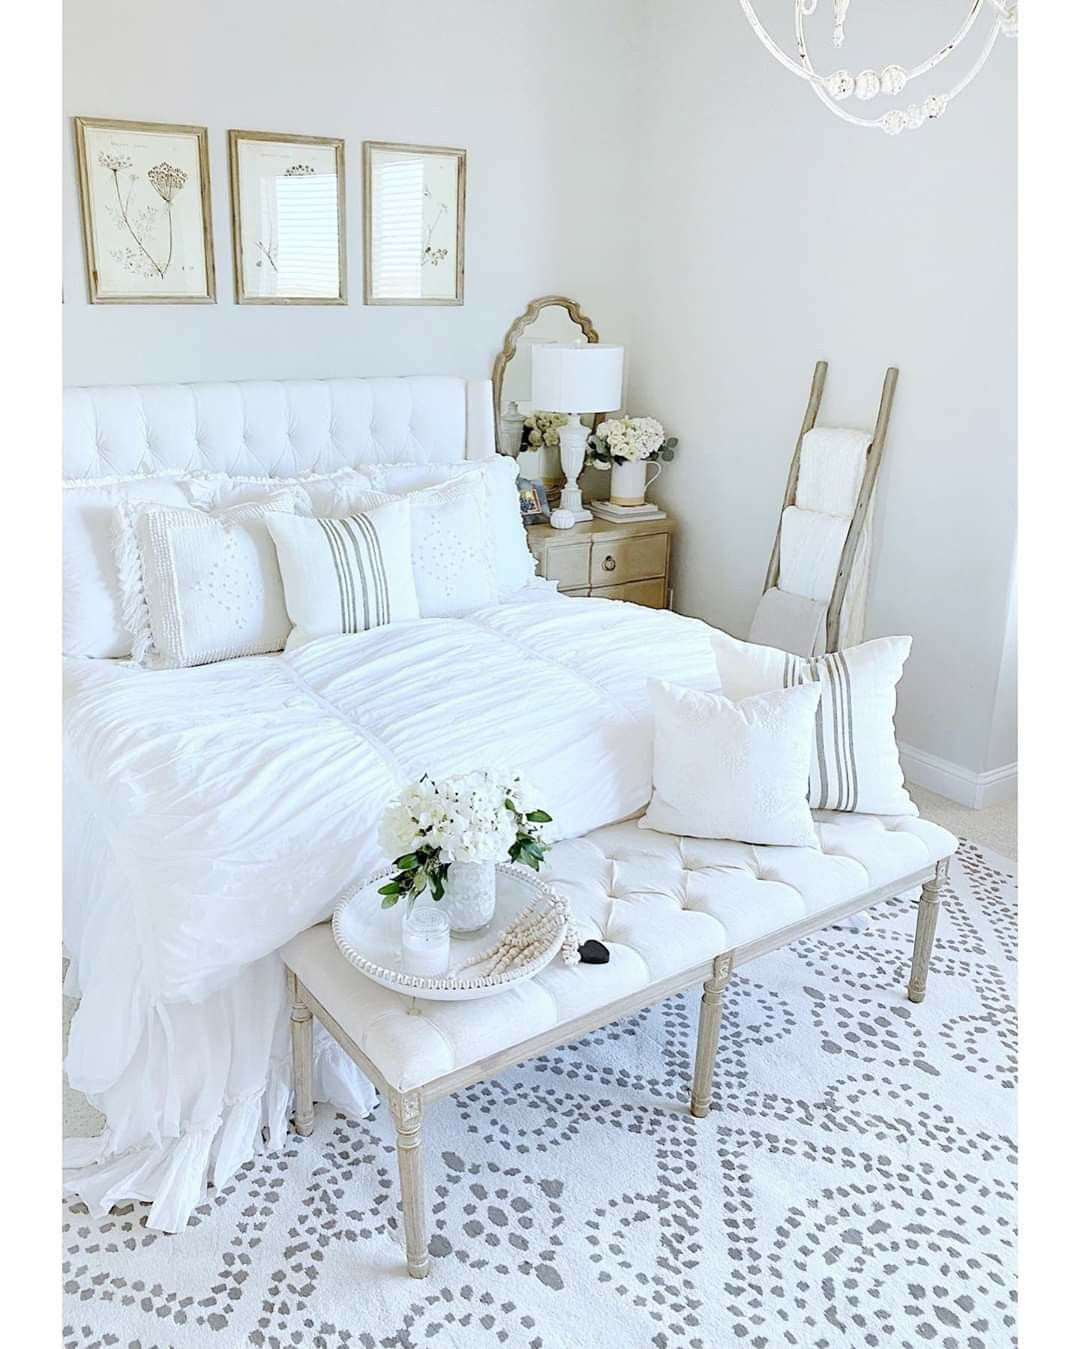 Pin by Maria Sanchez on The beauty of White in 2020